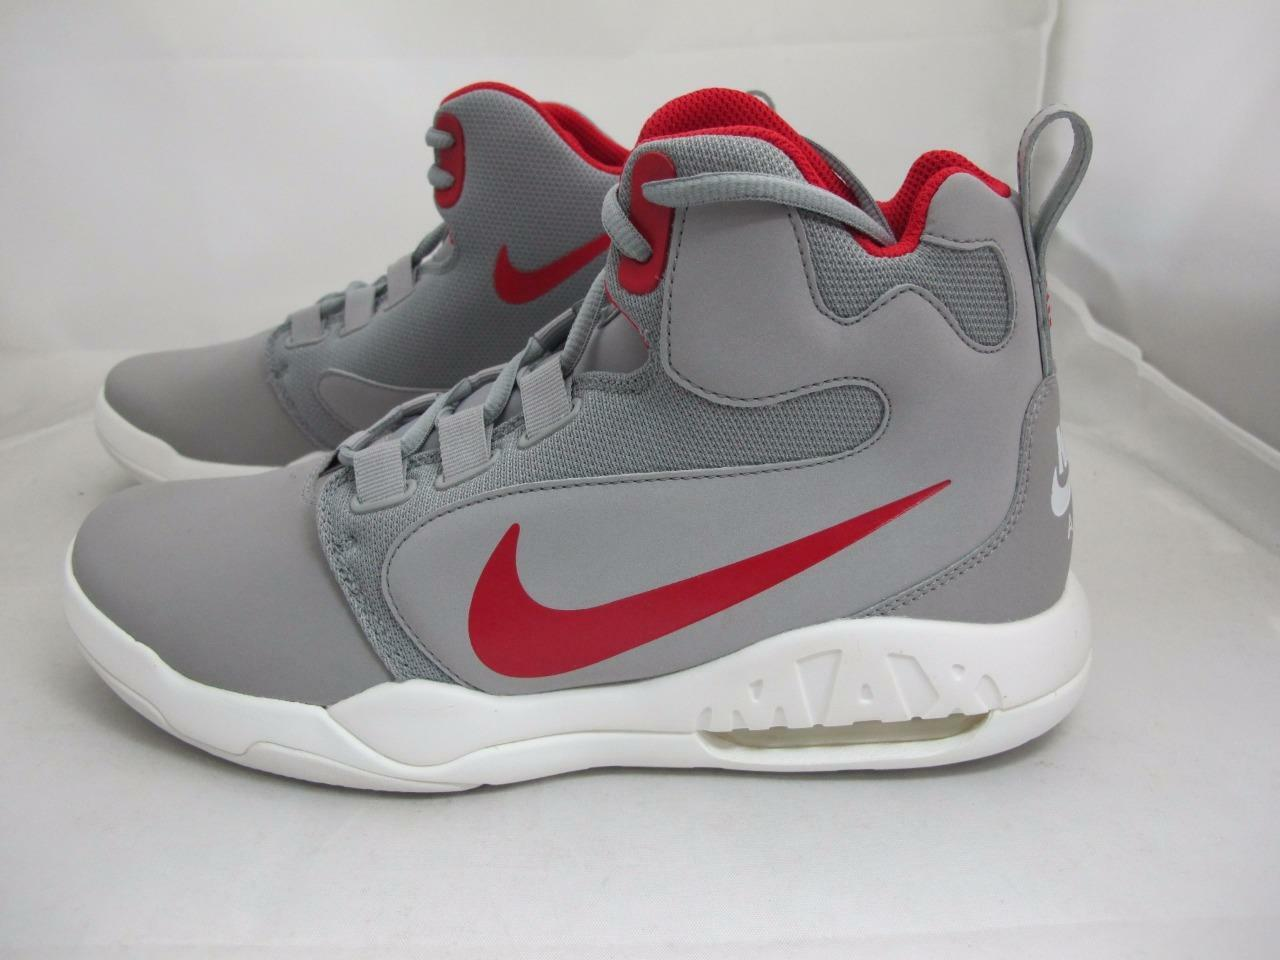 NEW MEN'S NIKE AIR CONVERSION 861678-004